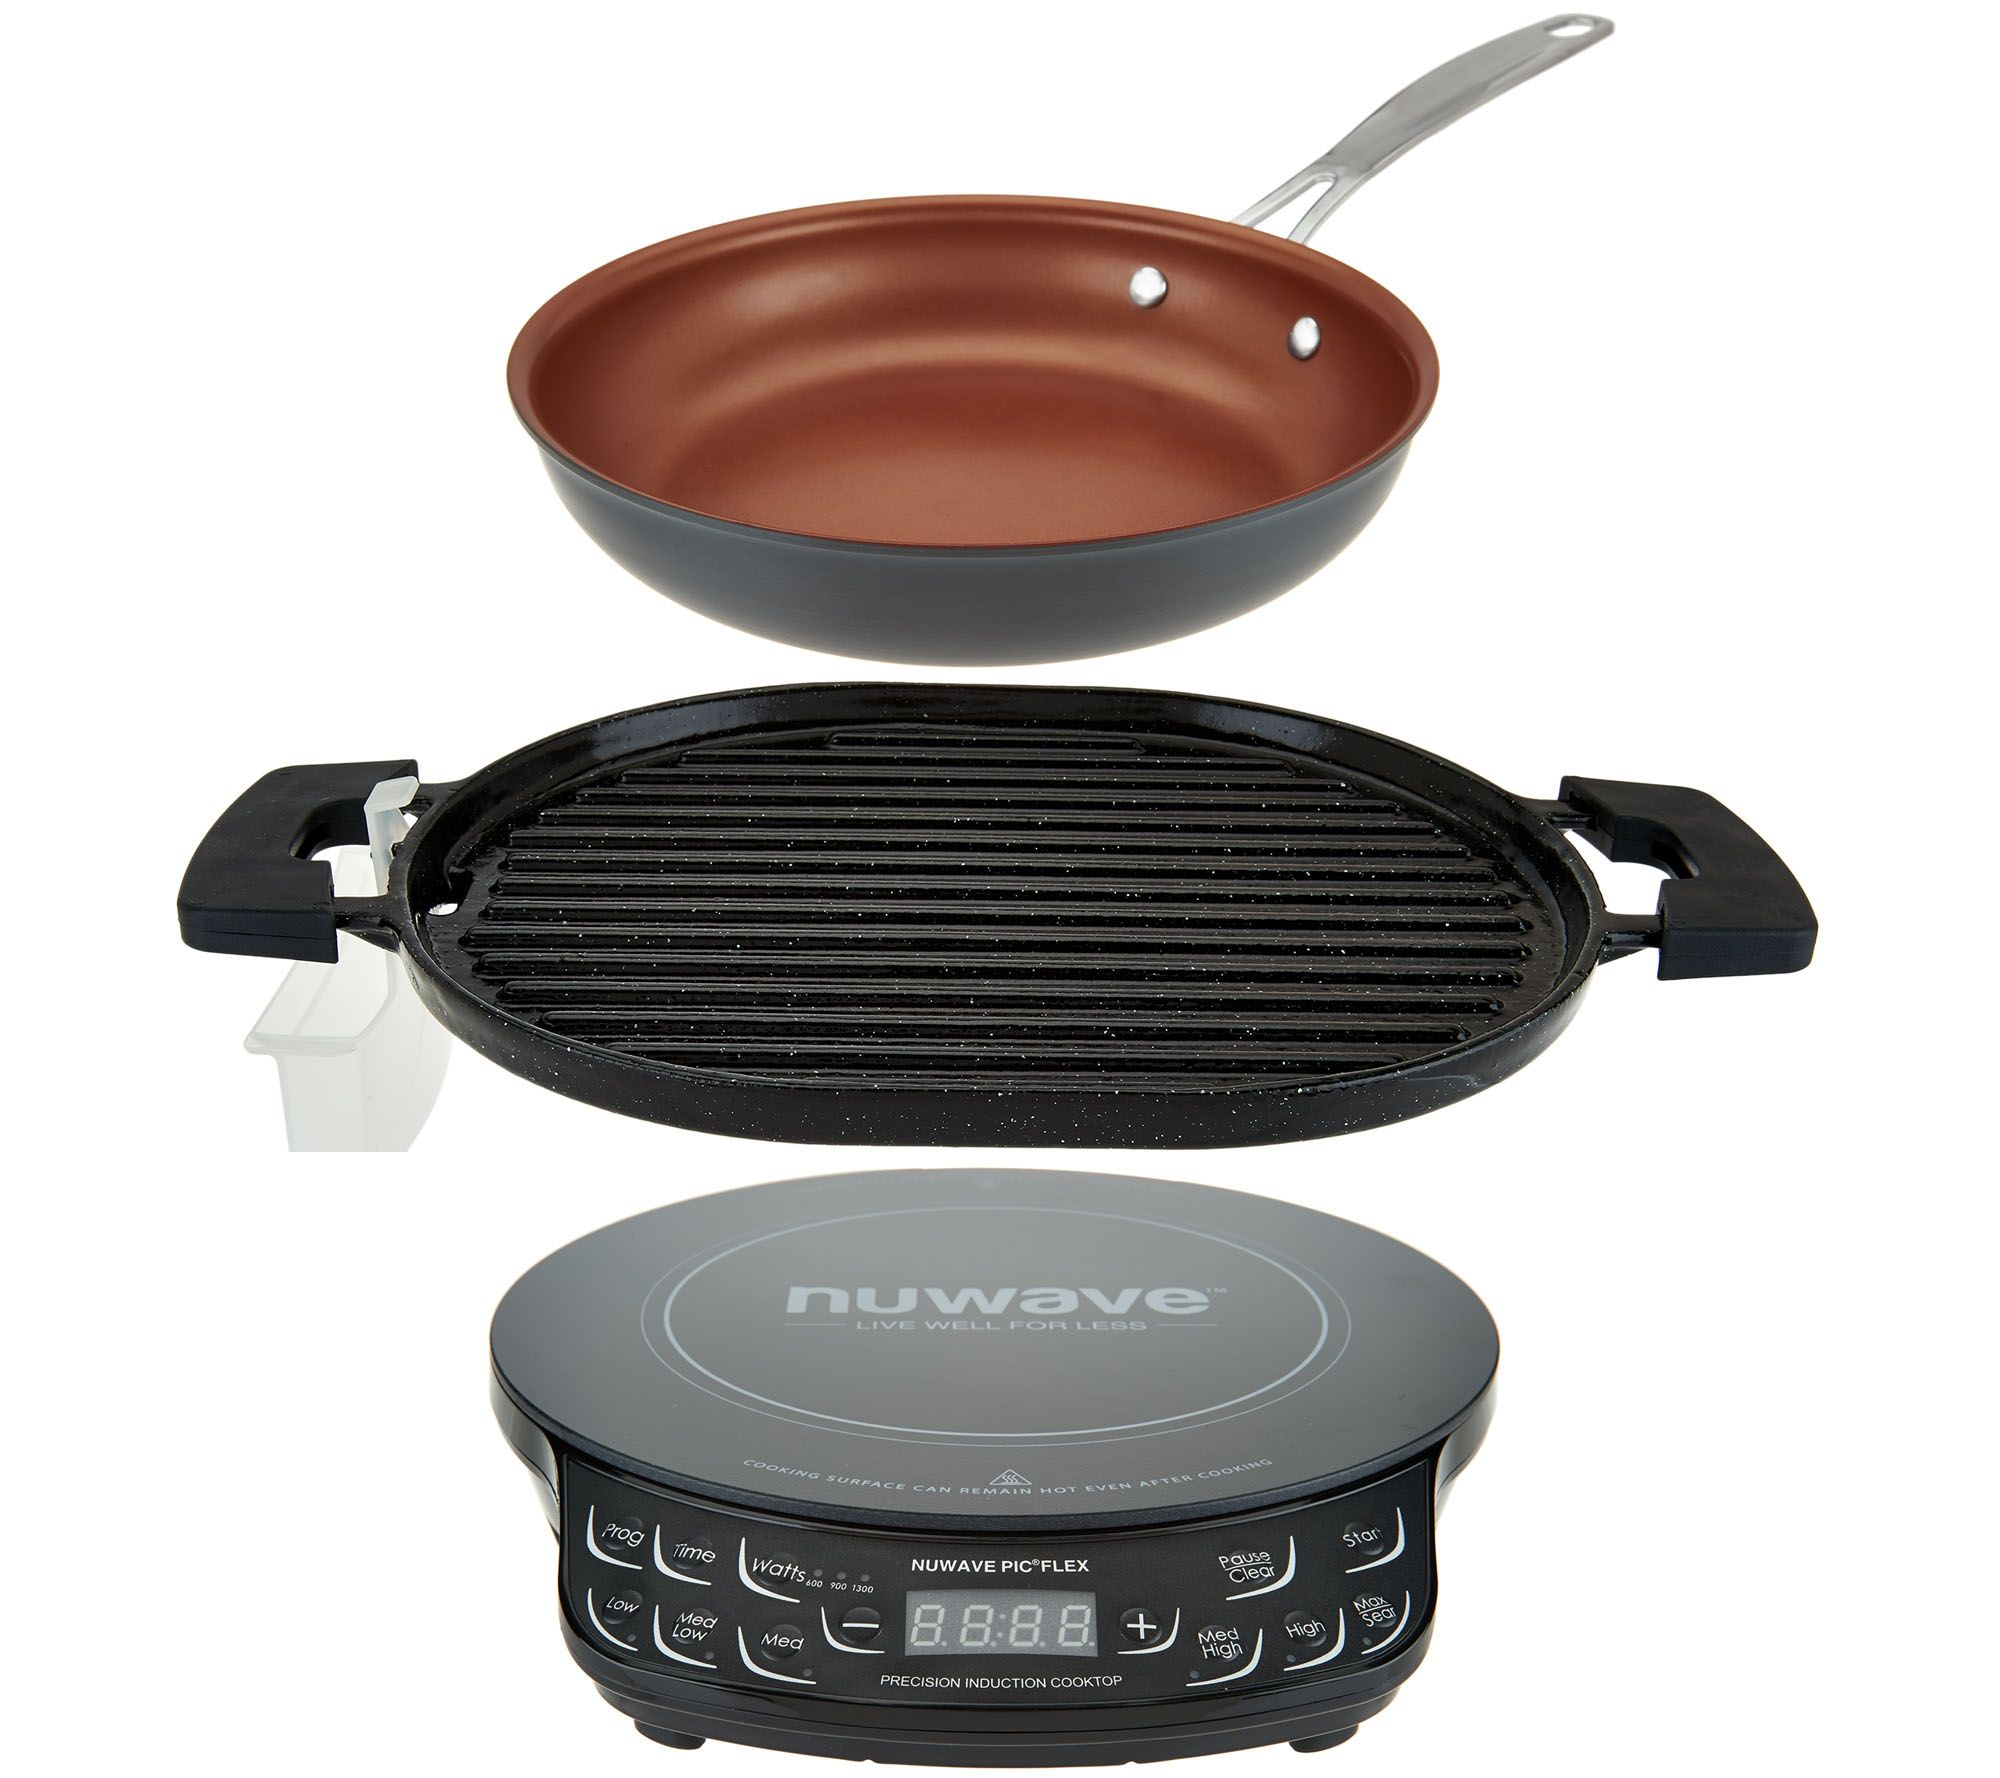 NuWave Induction Cooktop Flex w Cast Iron Grill 9 Fry Pan